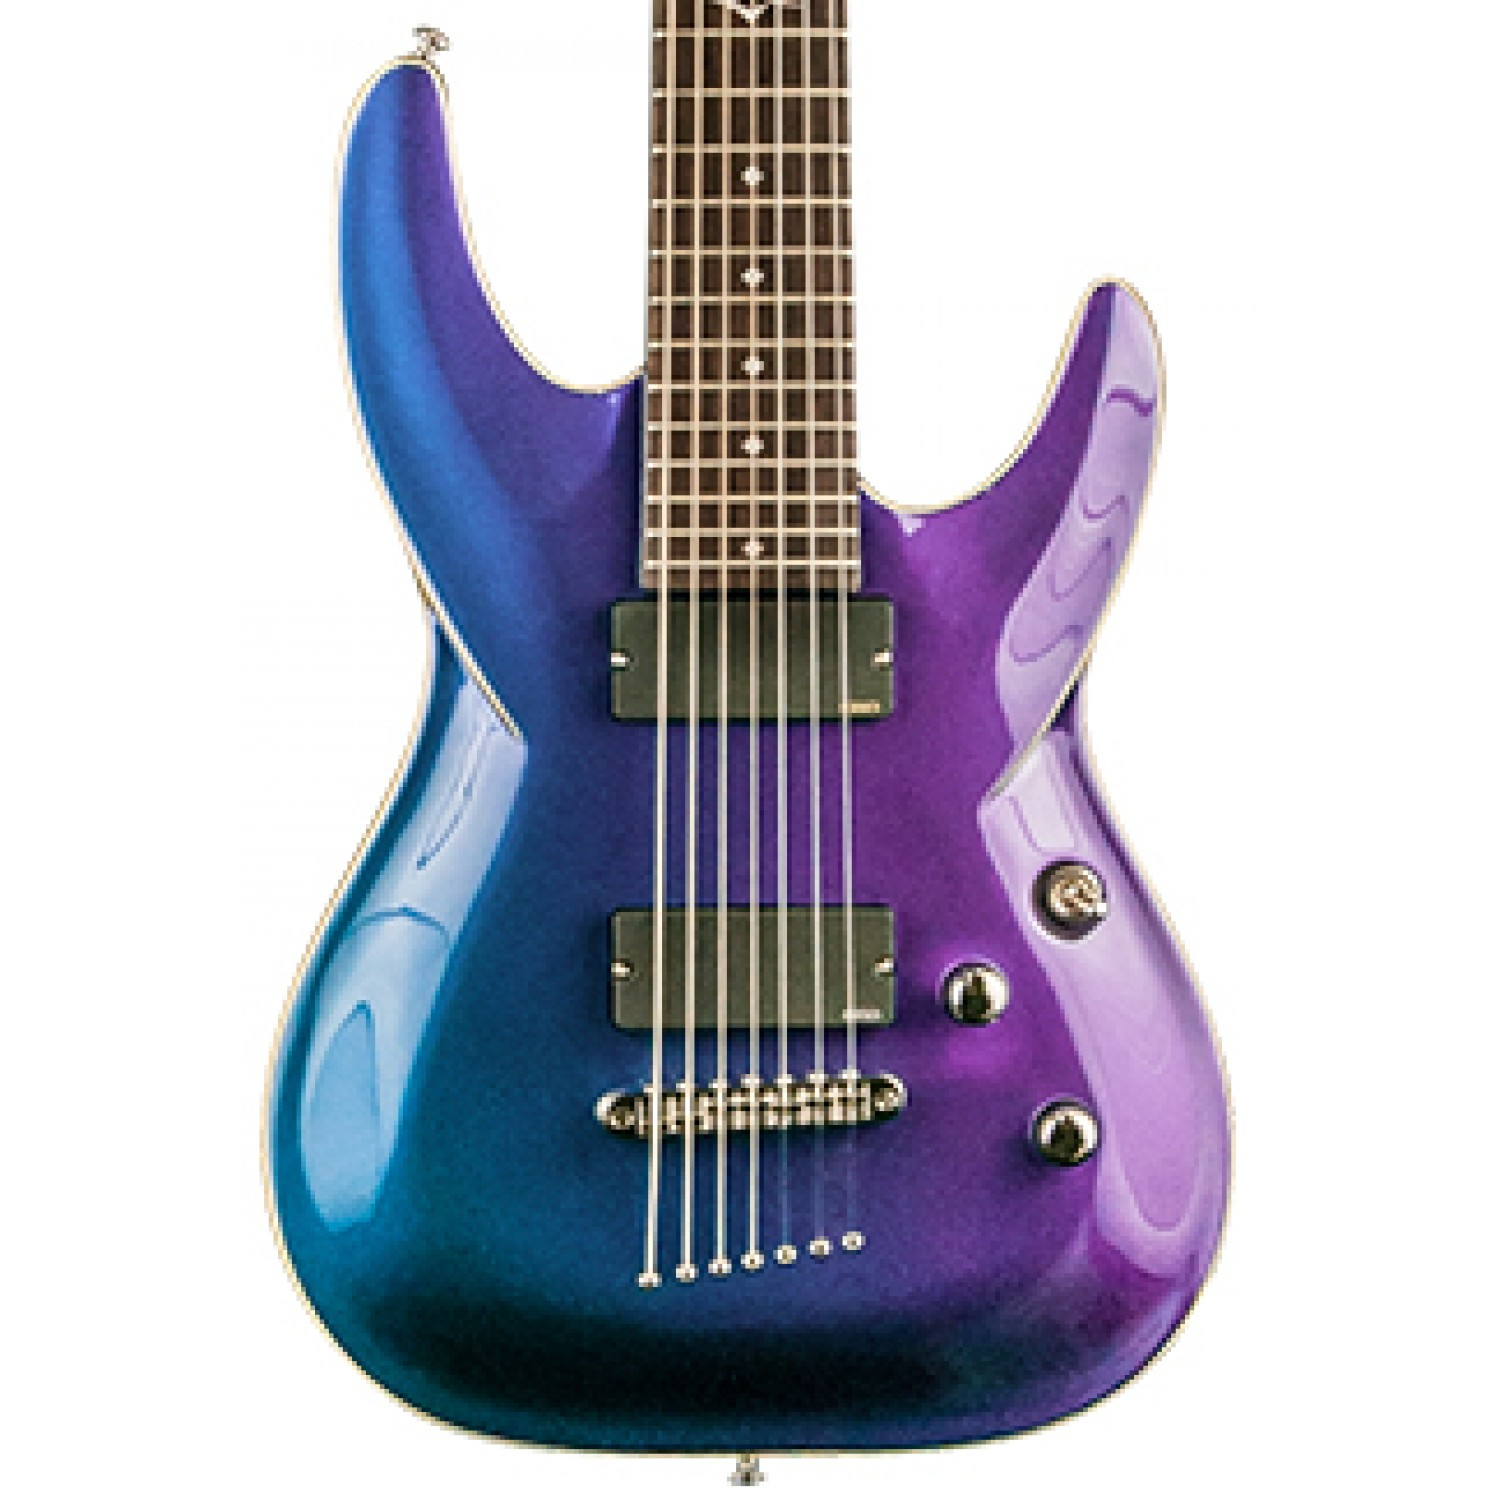 dbz diamond barst7 gxp barchetta 7 string electric guitar galaxy purple. Black Bedroom Furniture Sets. Home Design Ideas